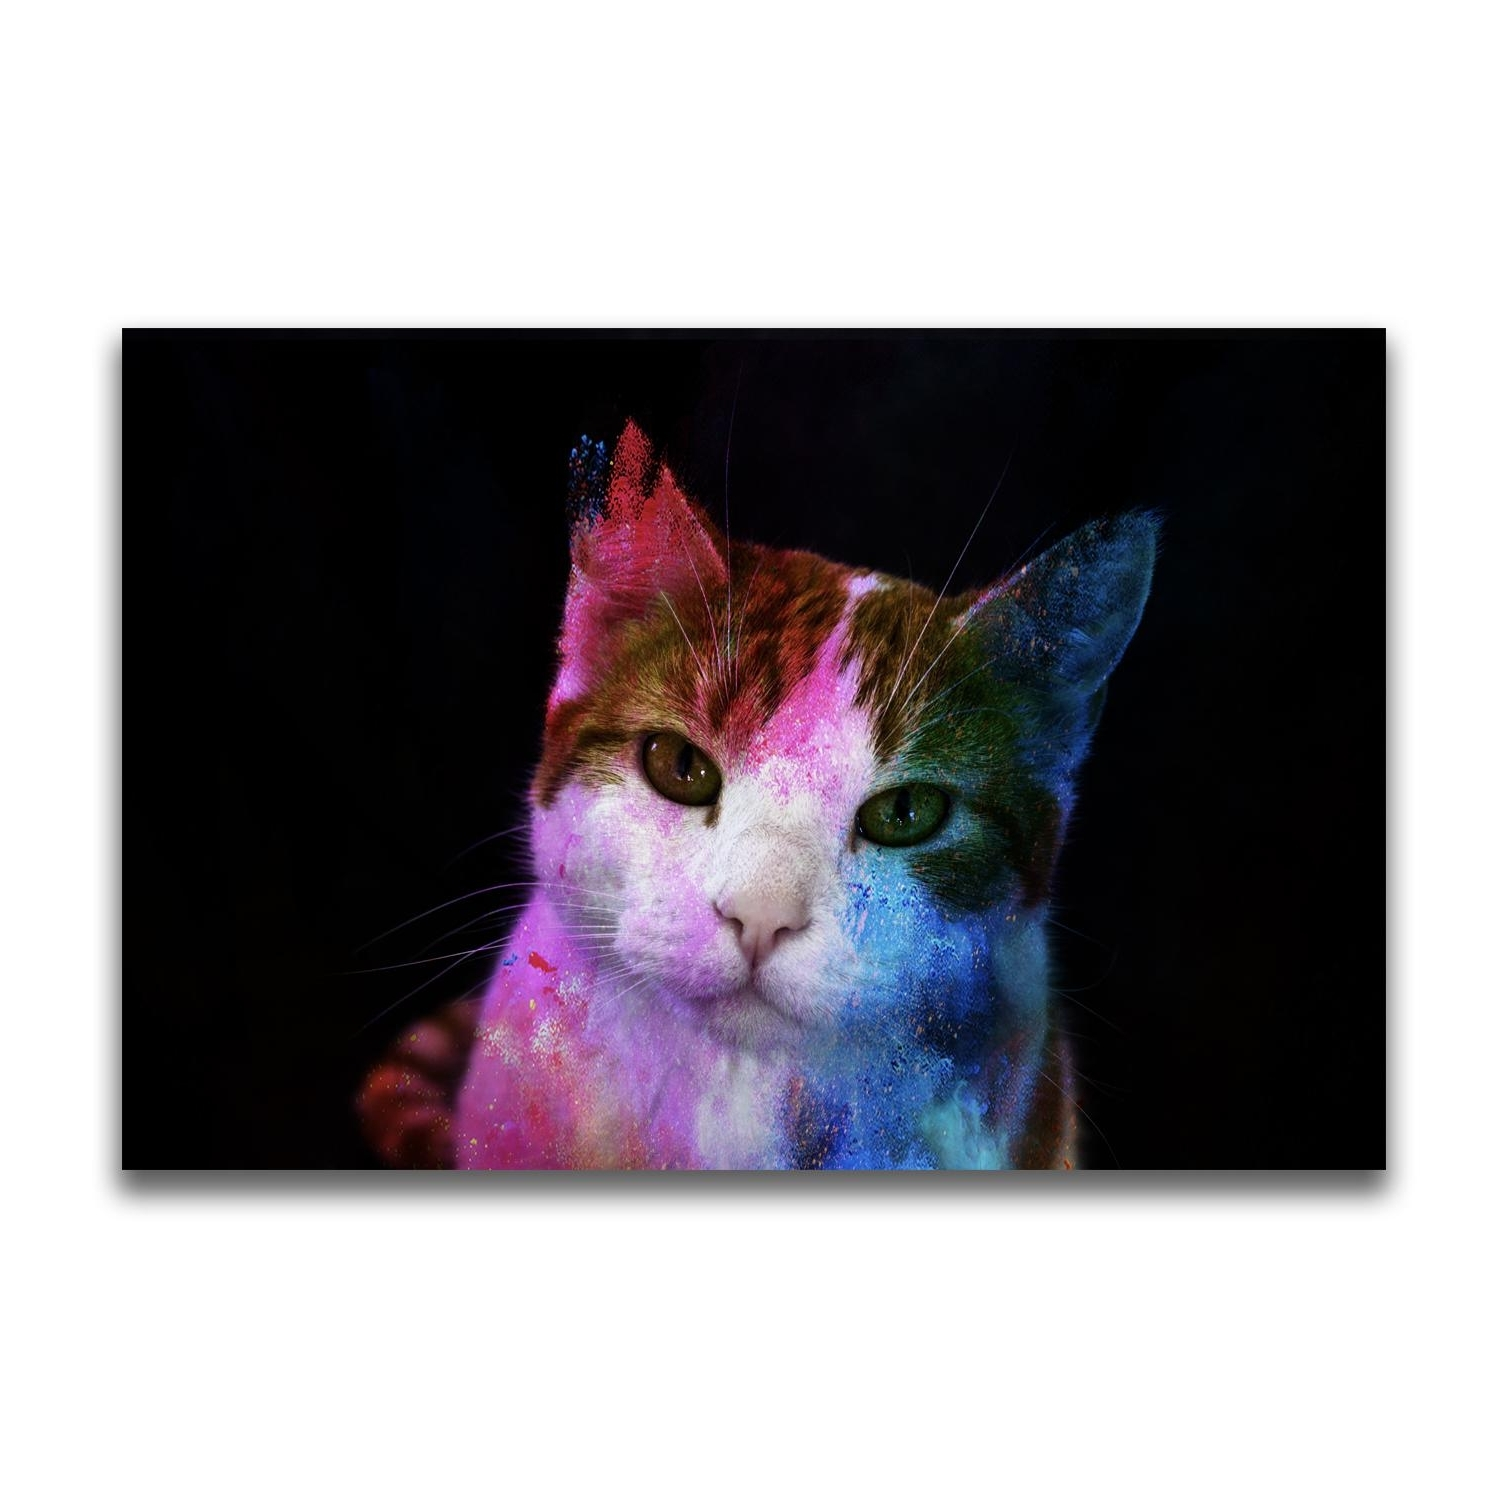 Yj Art A Colorful Cat Unframed Modern Canvas Wall Art For Home And Inside Well Known Cat Canvas Wall Art (View 15 of 15)